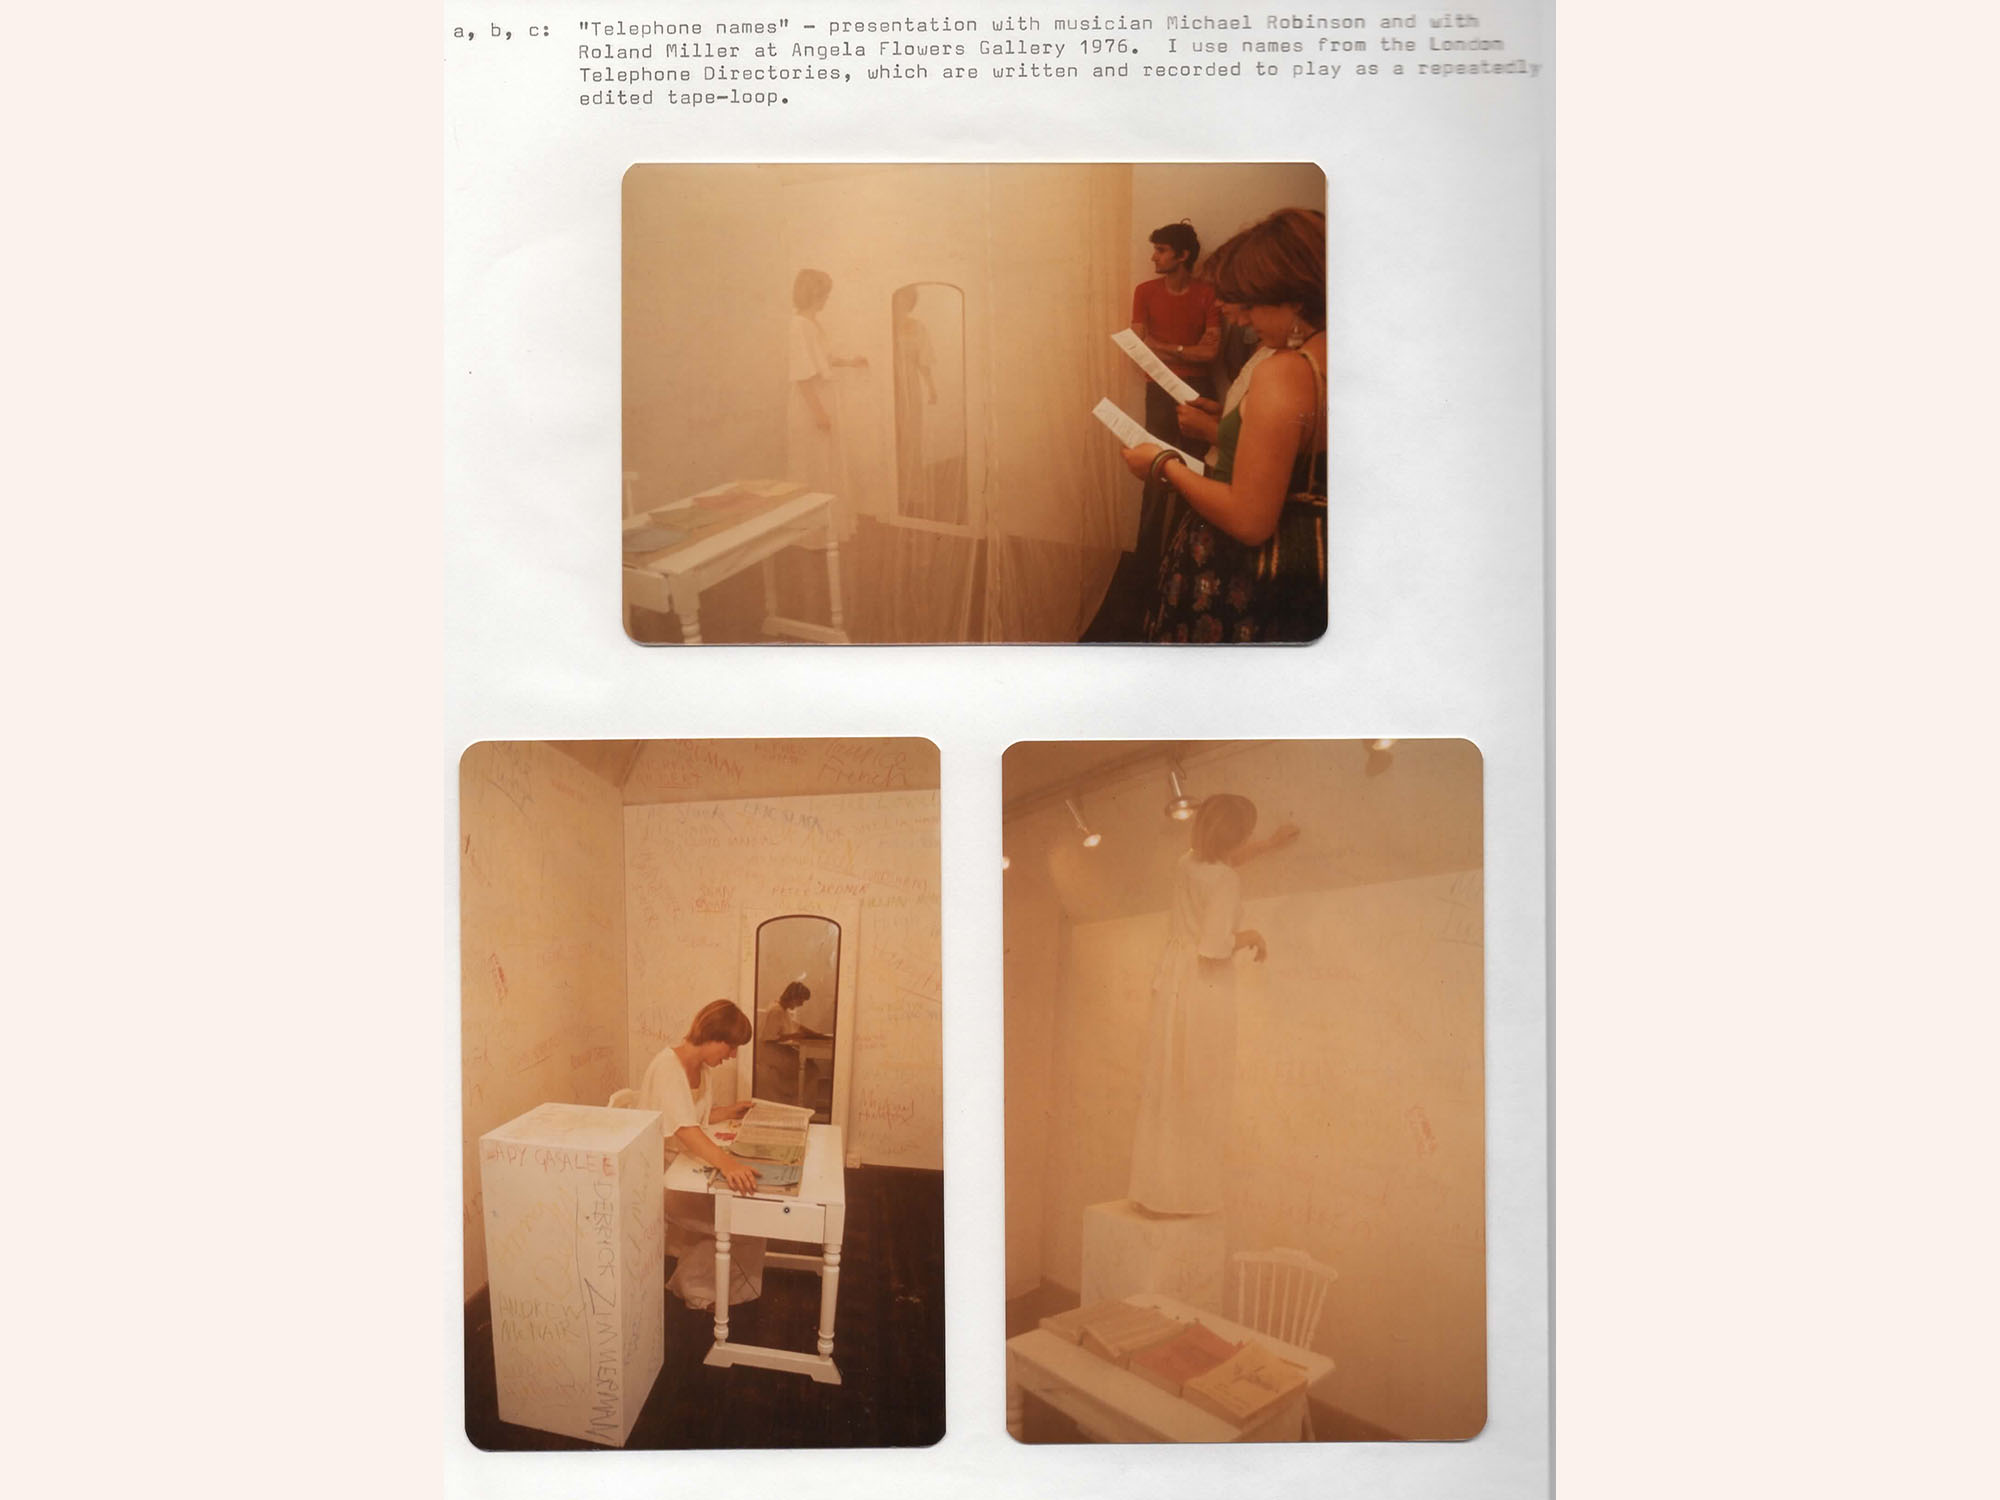 Shirley Cameron and Ronald Miller, Telephone Names, (1976). Angela Flowers Gallery, London.